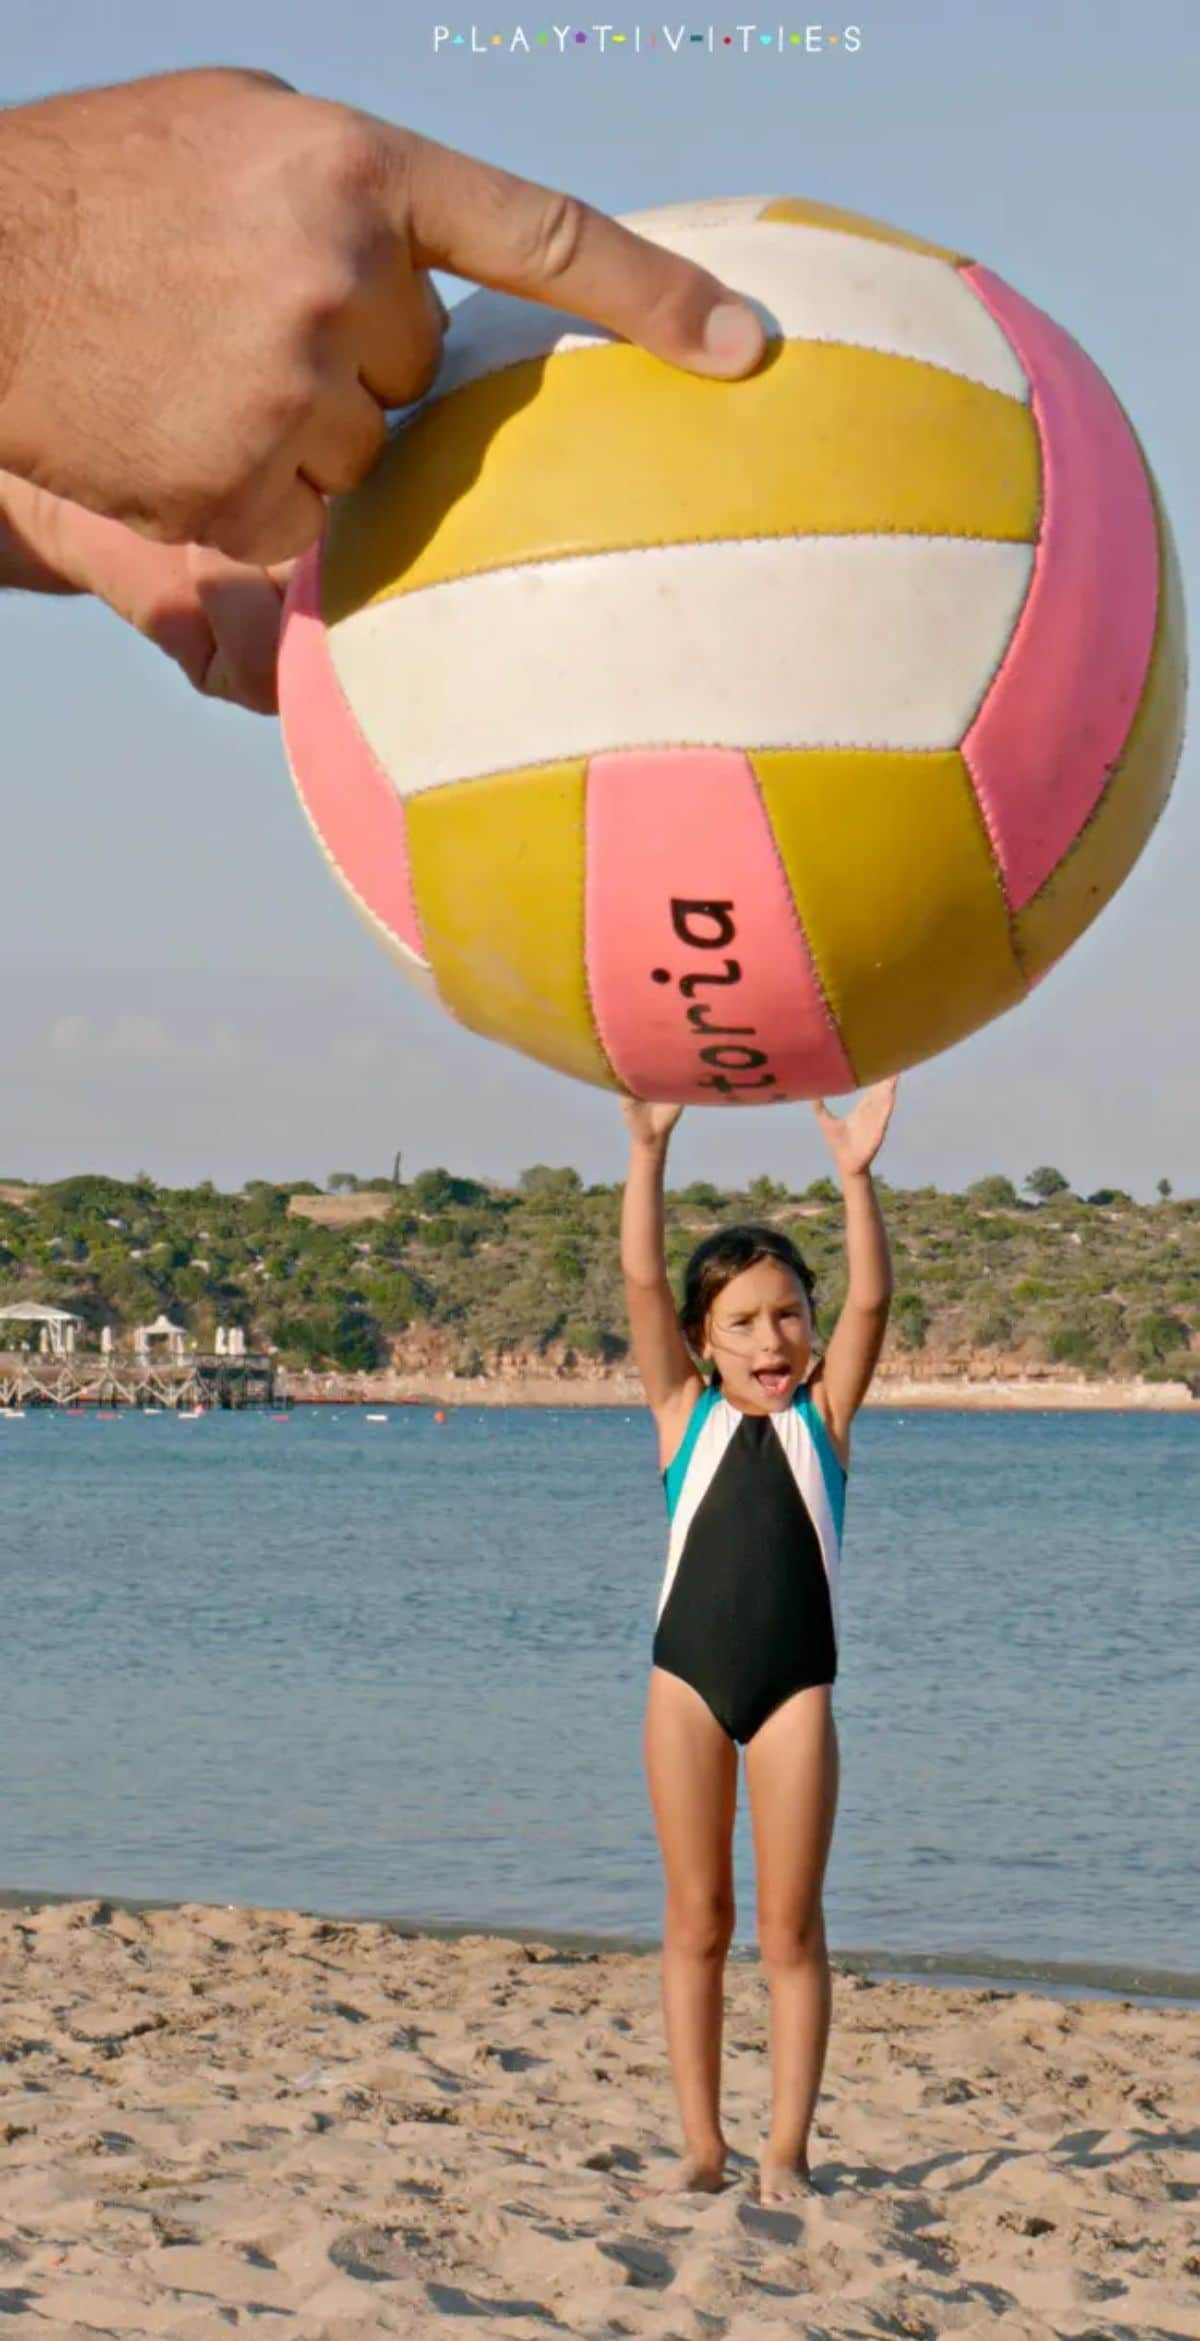 a girl in a black swimsuit raches up as if to hold agiant beachball over her haed. The ball is being held by two large hands. The backdrop is a beach